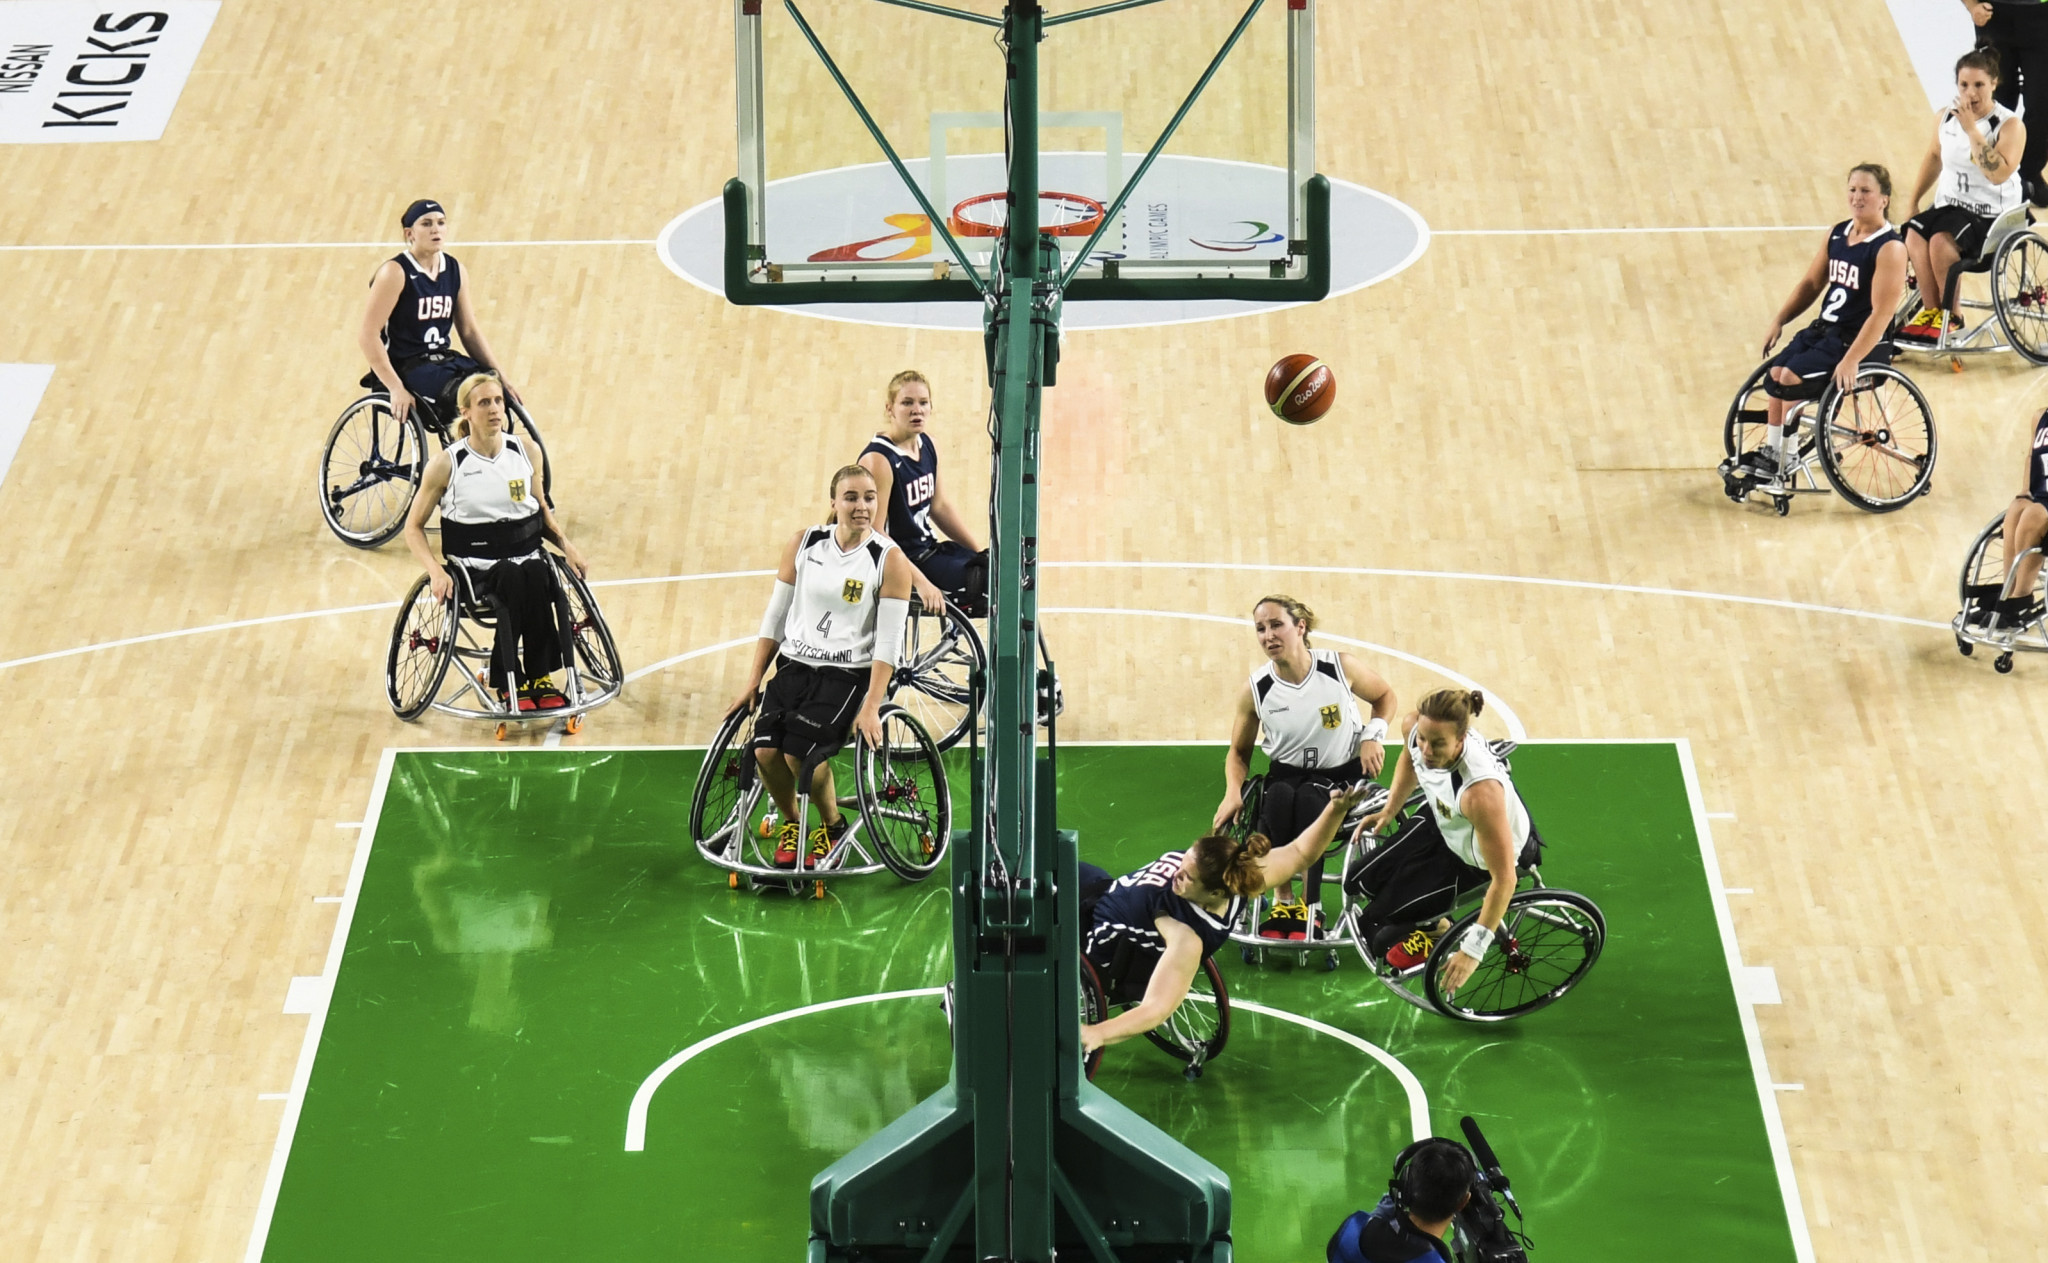 IPC says rules must be followed to ensure competition integrity amid wheelchair basketball dispute